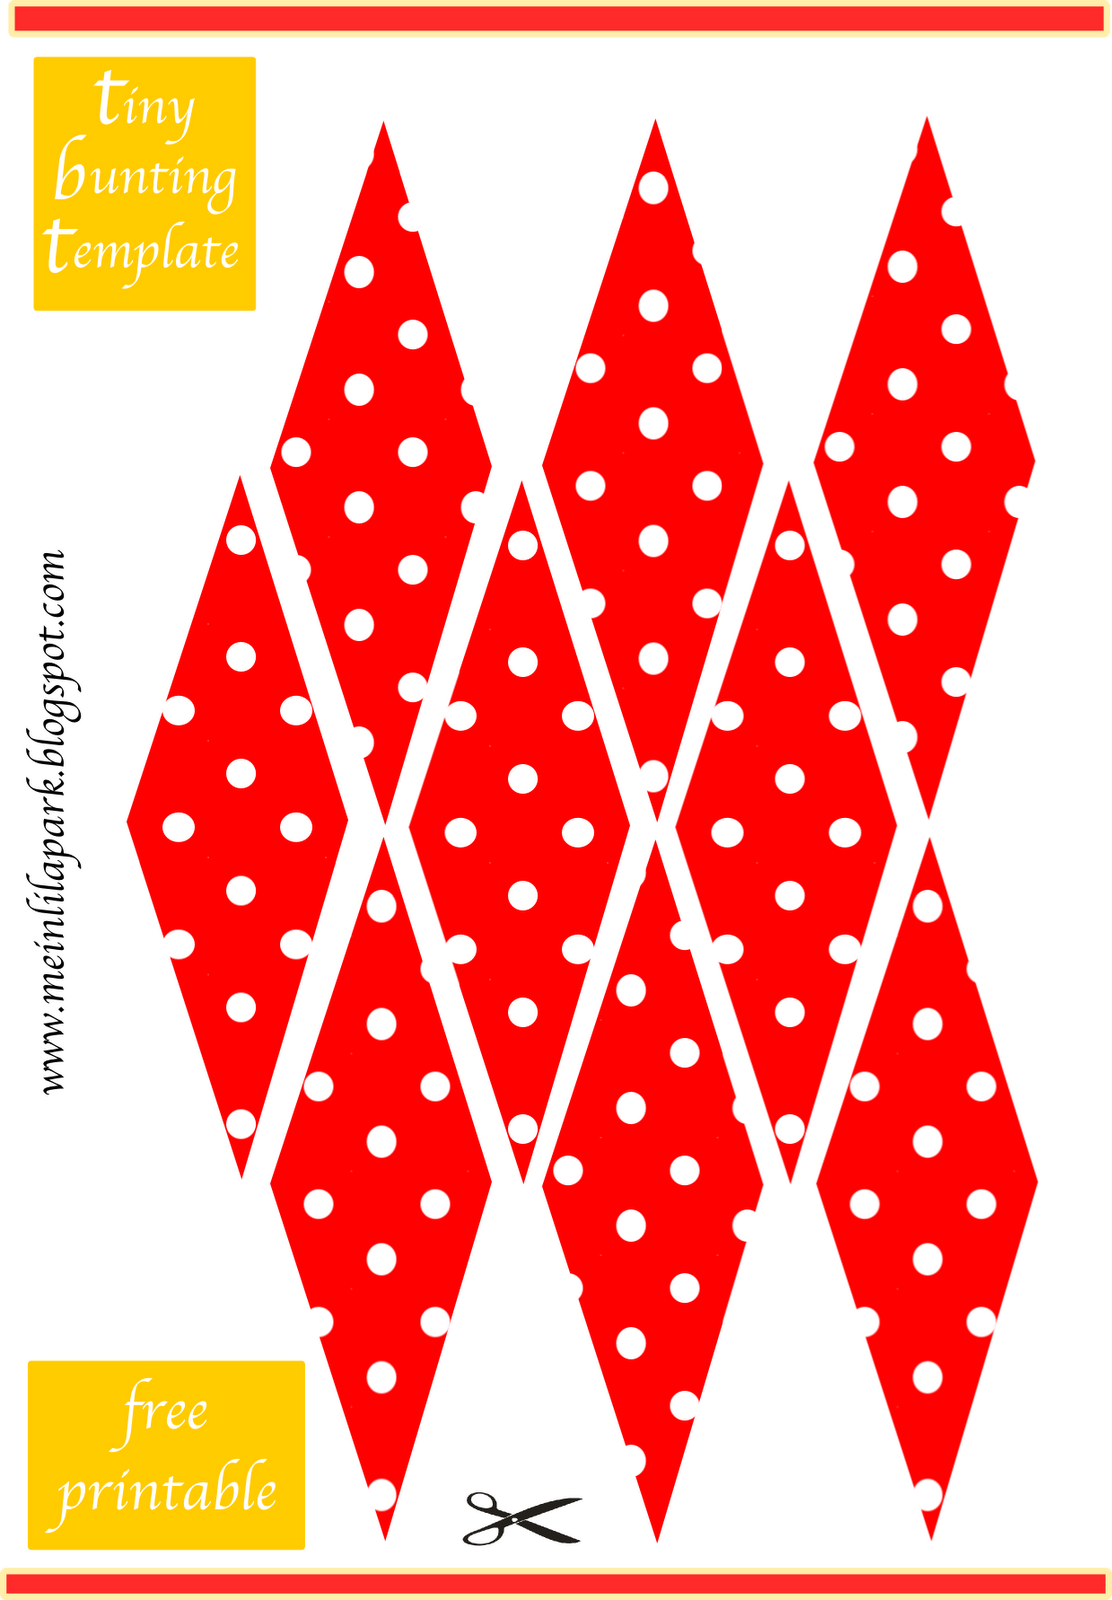 5 Images of Free Printable Mini Bunting